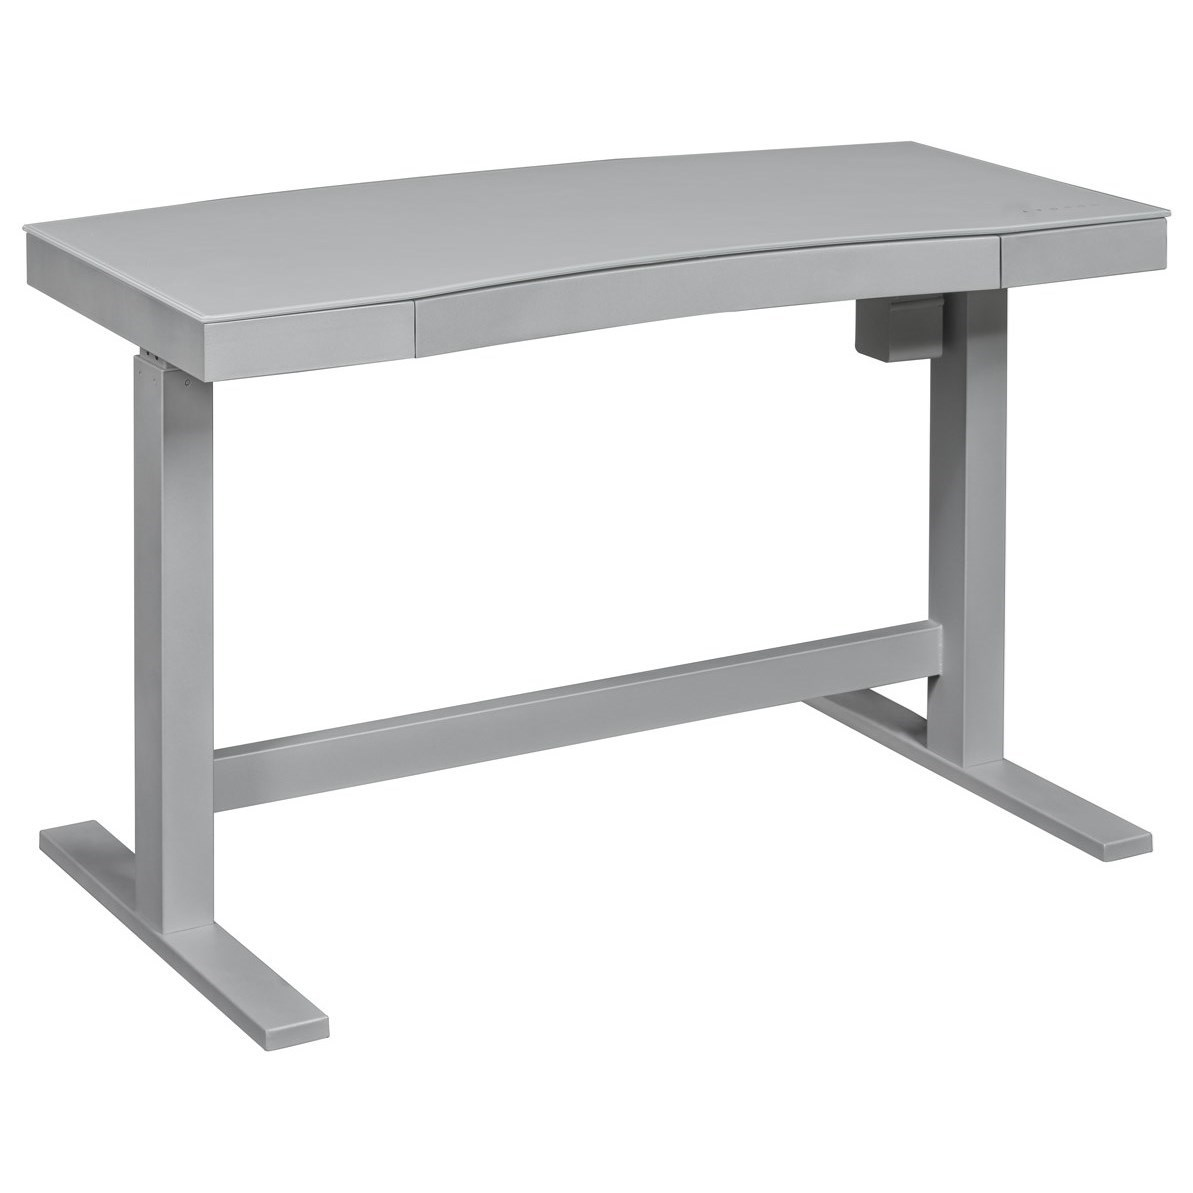 Curved White / Grey Adjustable Desk